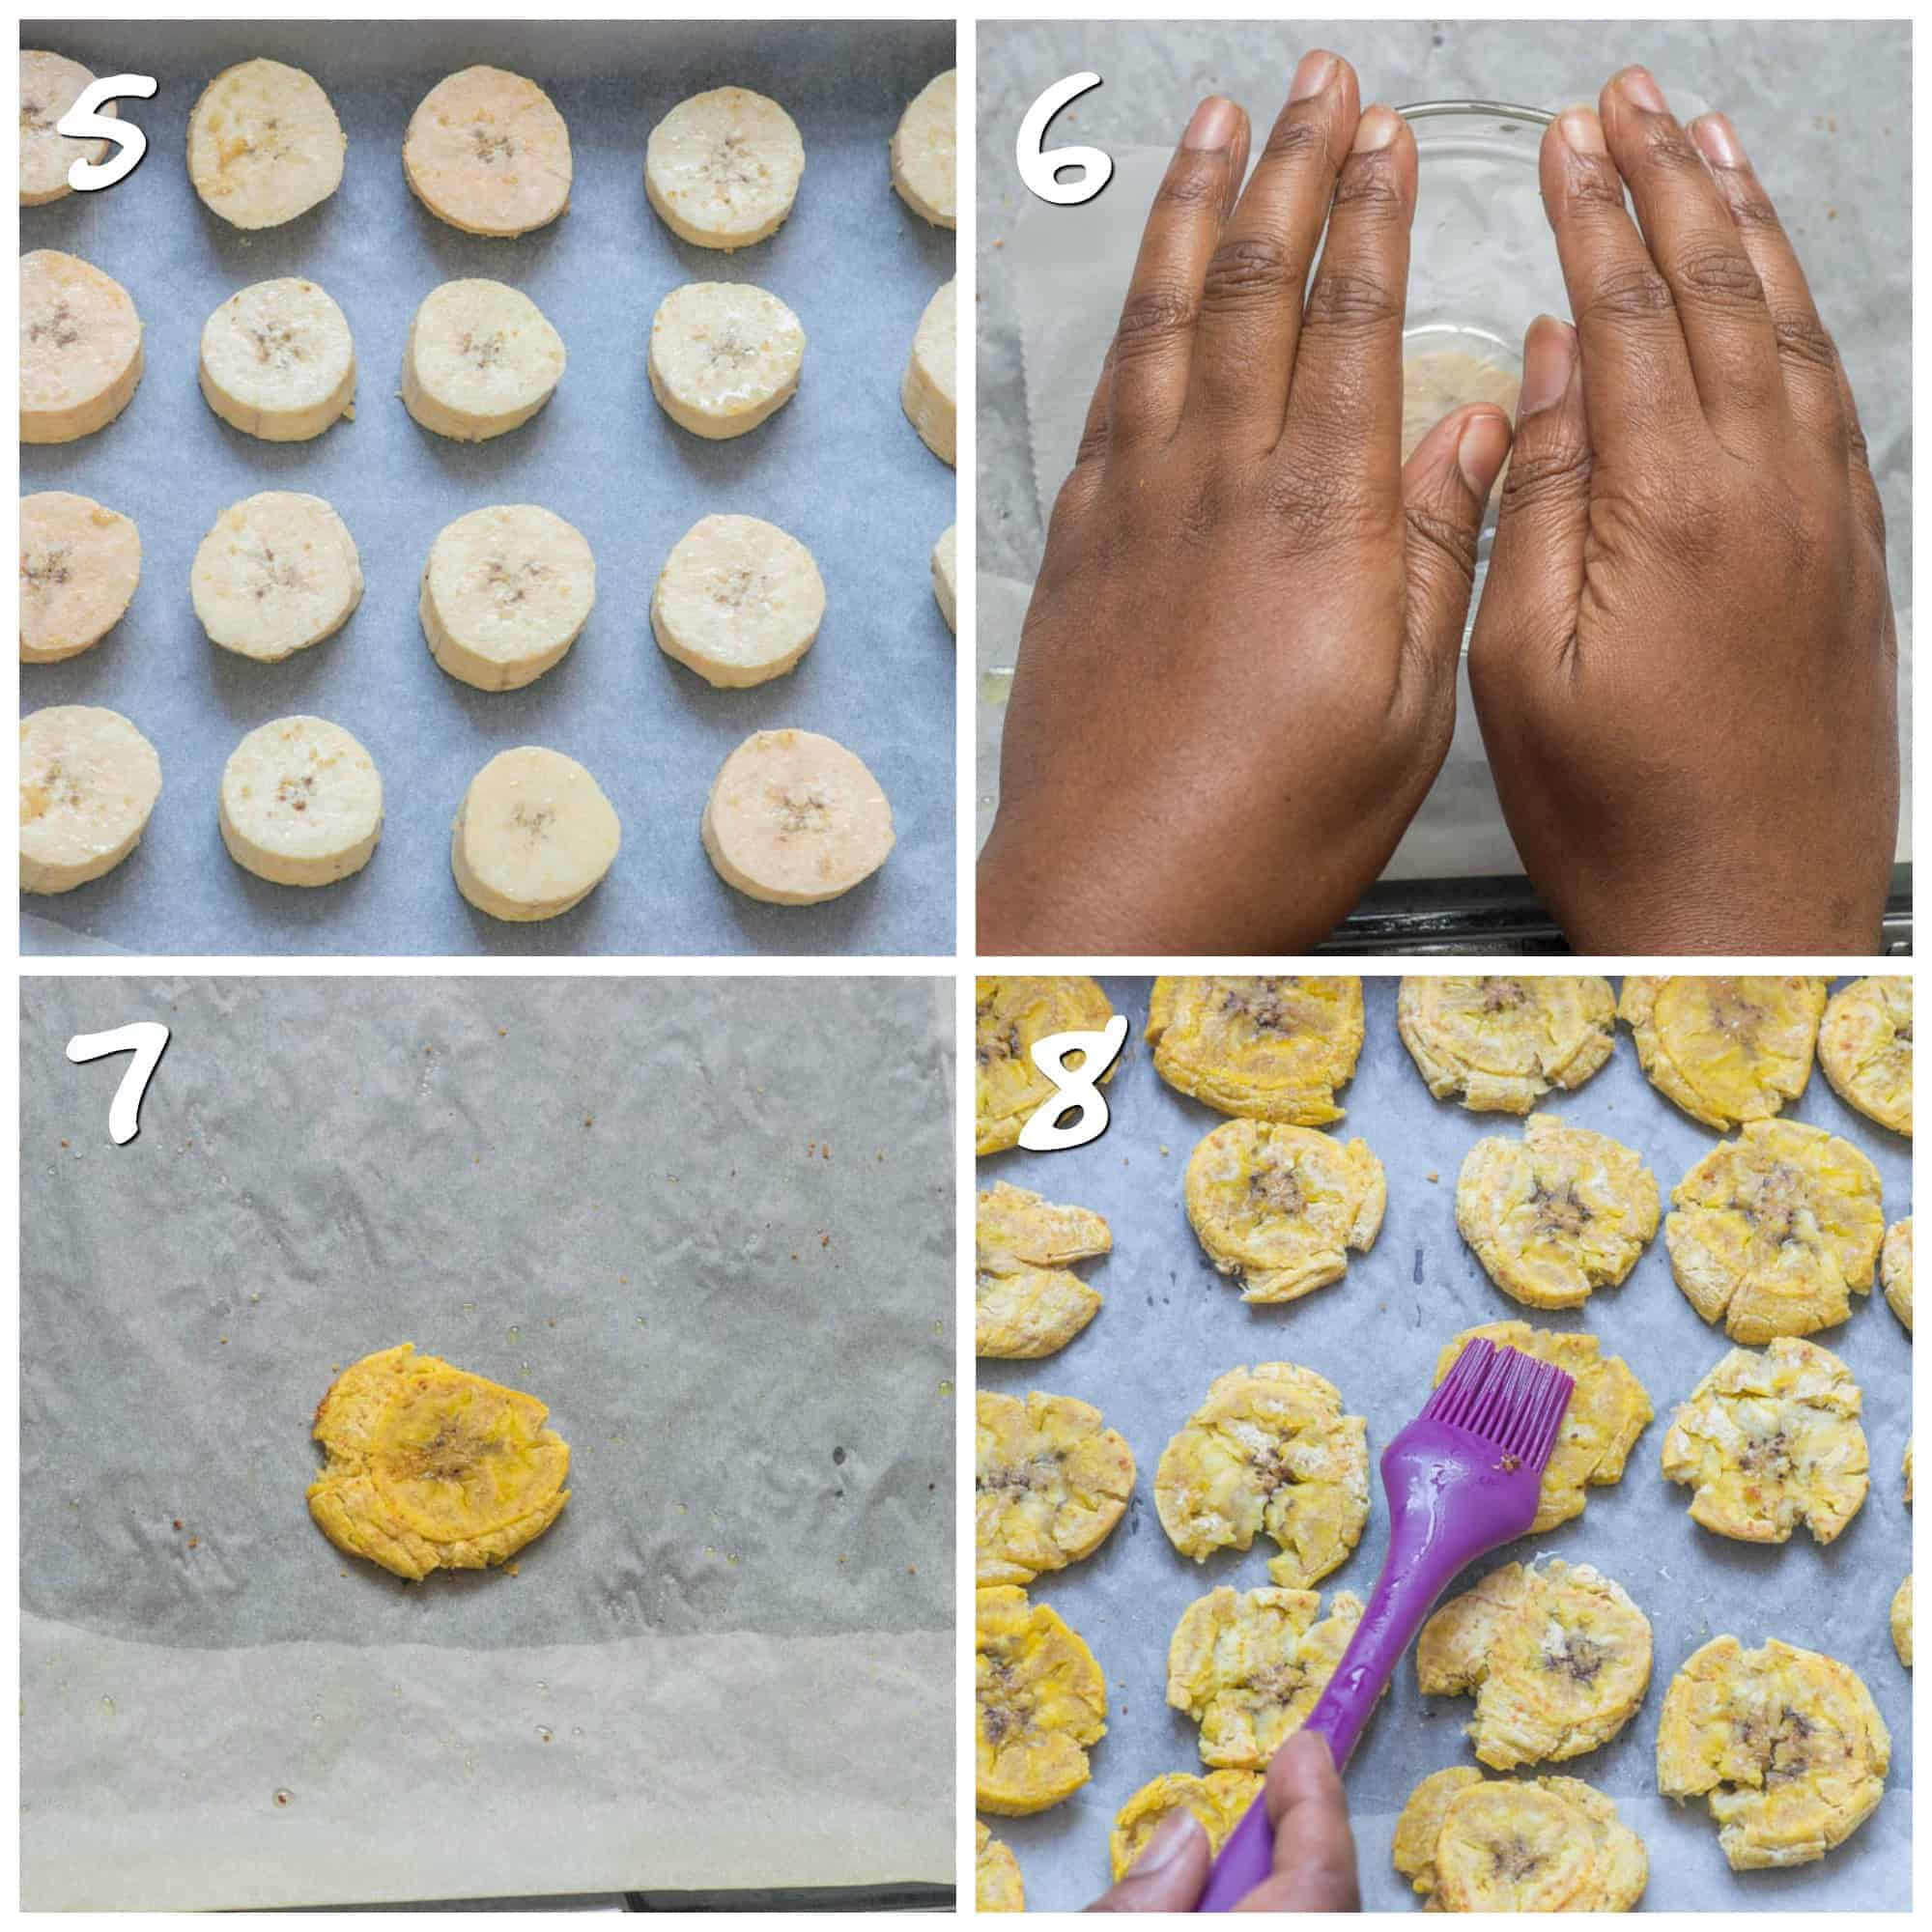 steps 5-8 baking the tostones